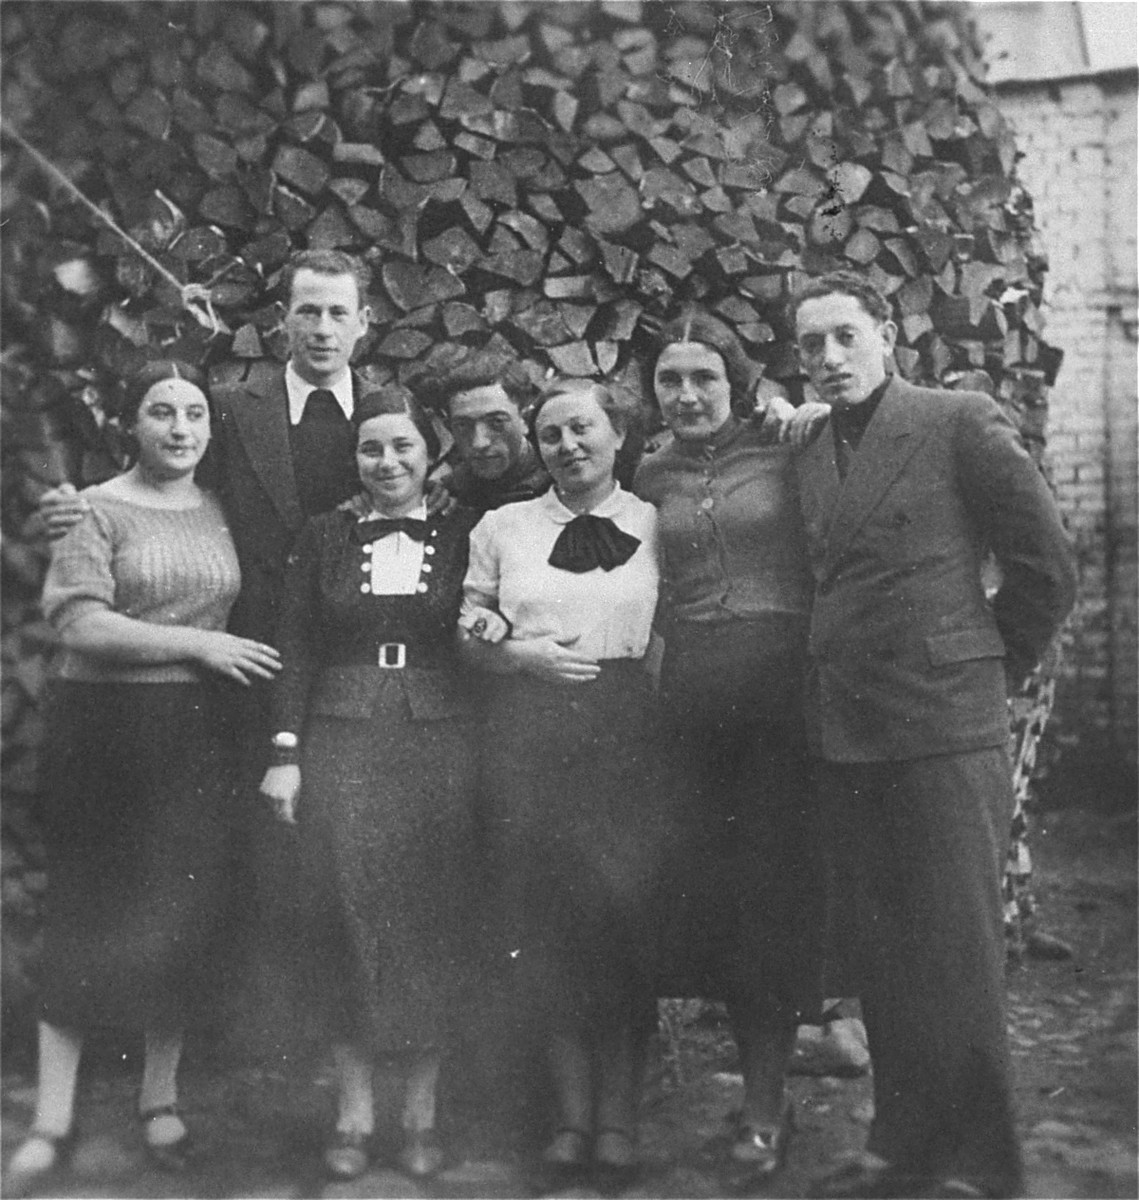 Eliezer Kaplan (right) poses with a group of friends in Lithuania.